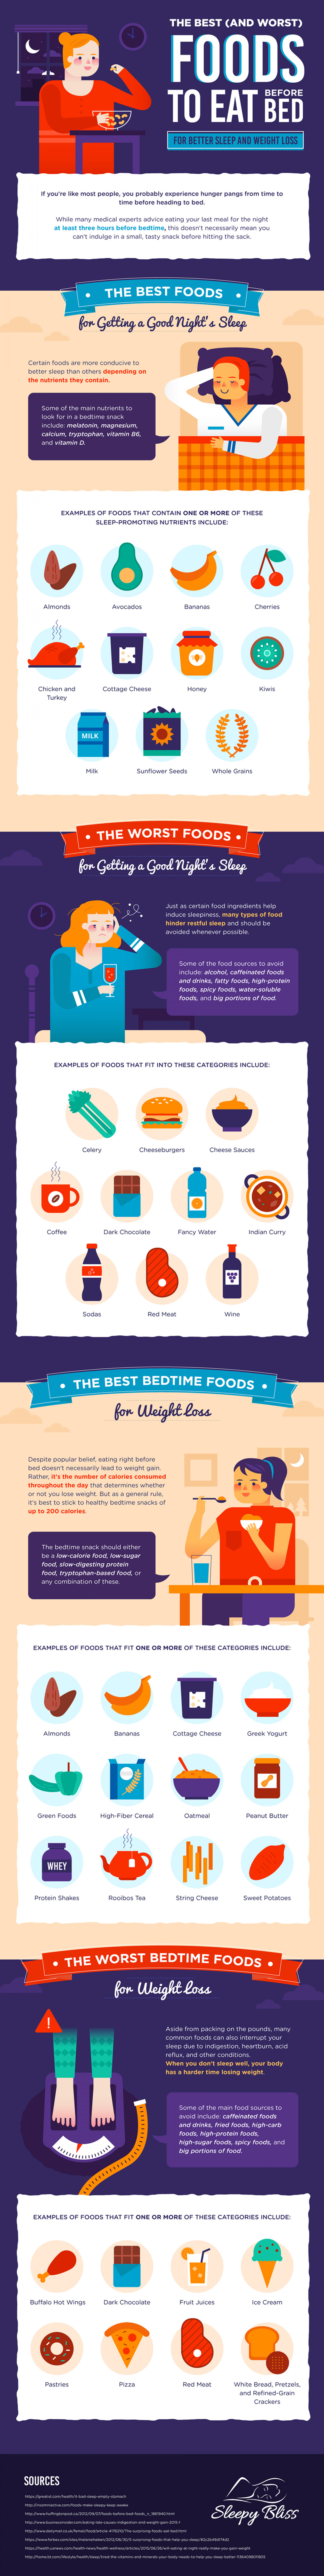 The Best (And Worst) Foods to Eat Before Bed Infographic